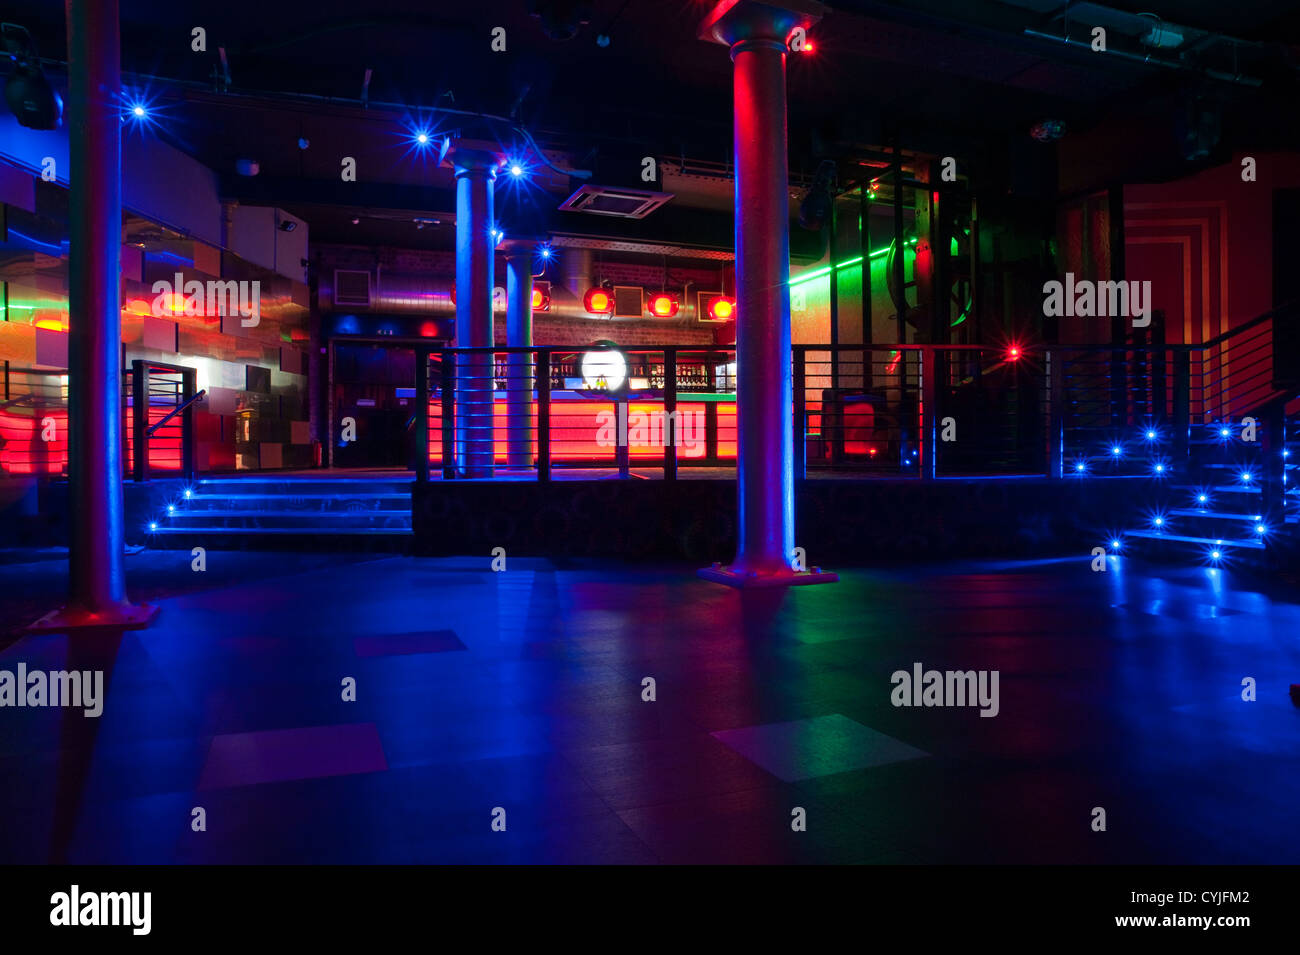 Design Your Own Home Entertainment Center Night Club Dance Floor Interior Design Stock Photo